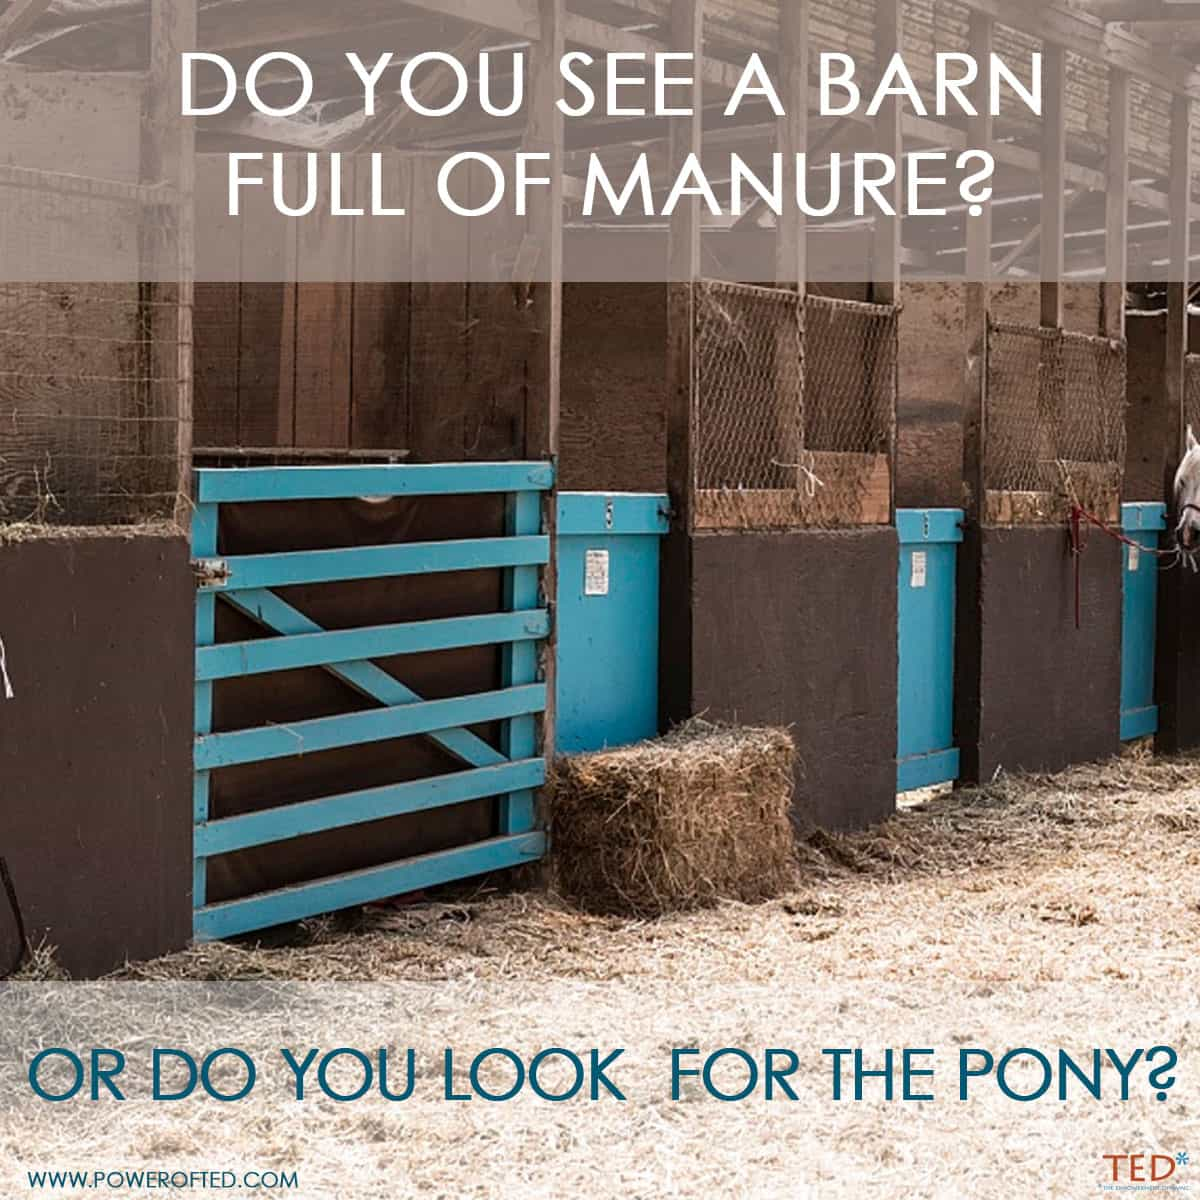 Do you see a barn full of manure or do you look for the pony?